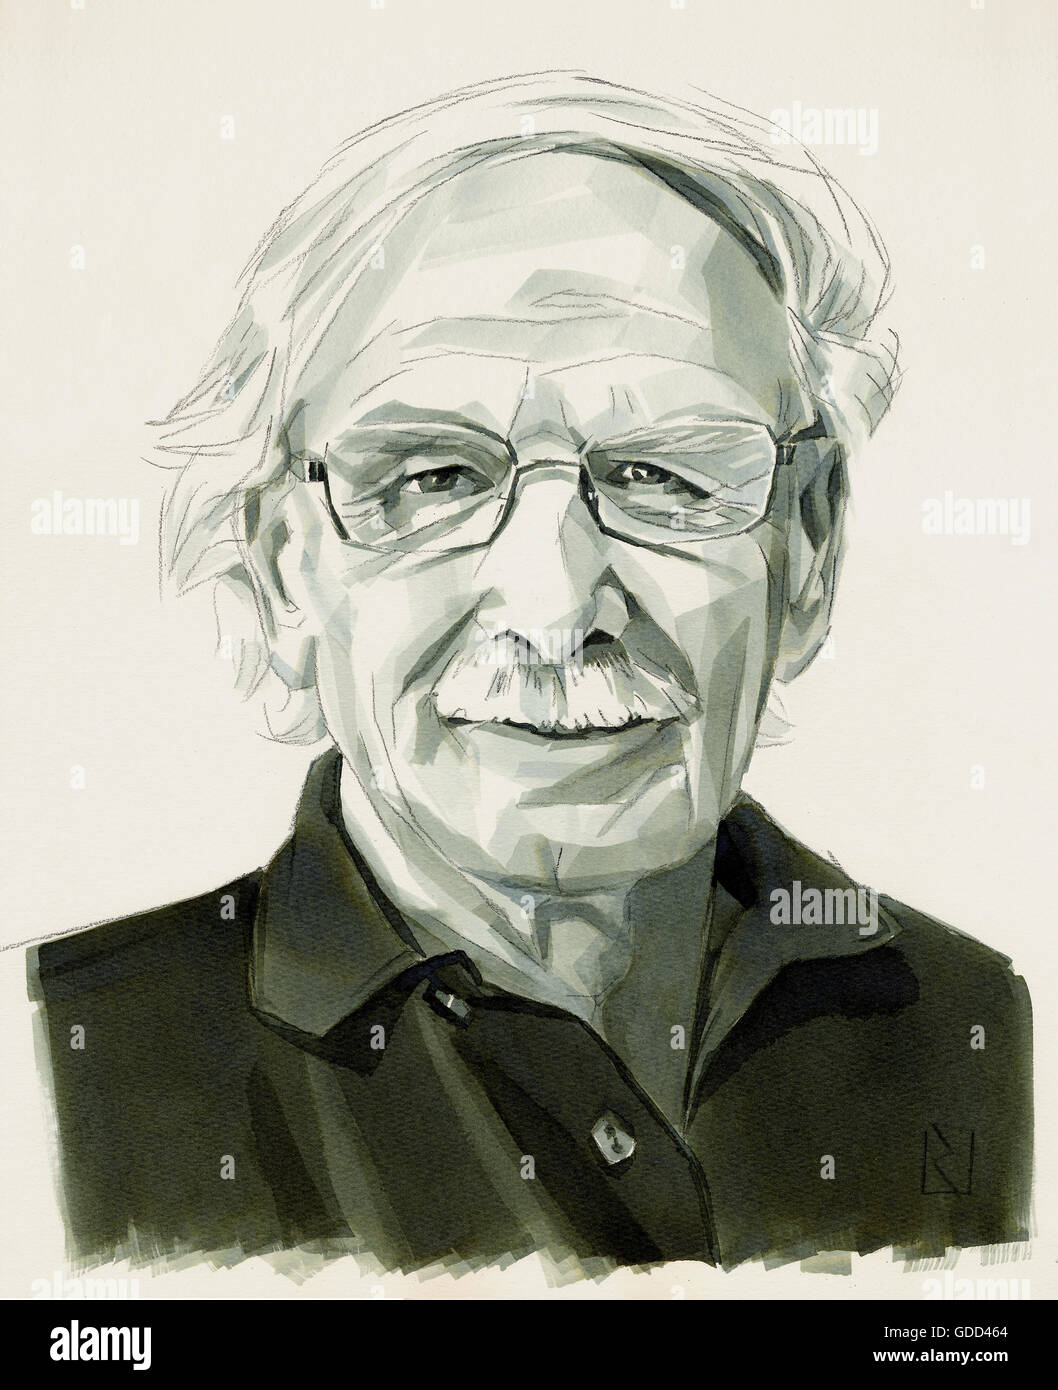 Rizzolatti, Giacomo, * 28.4.1937, Italian scientist (neurophysiologist), monochrome drawing by Jan Rieckhoff, 6.8.2007, - Stock Image